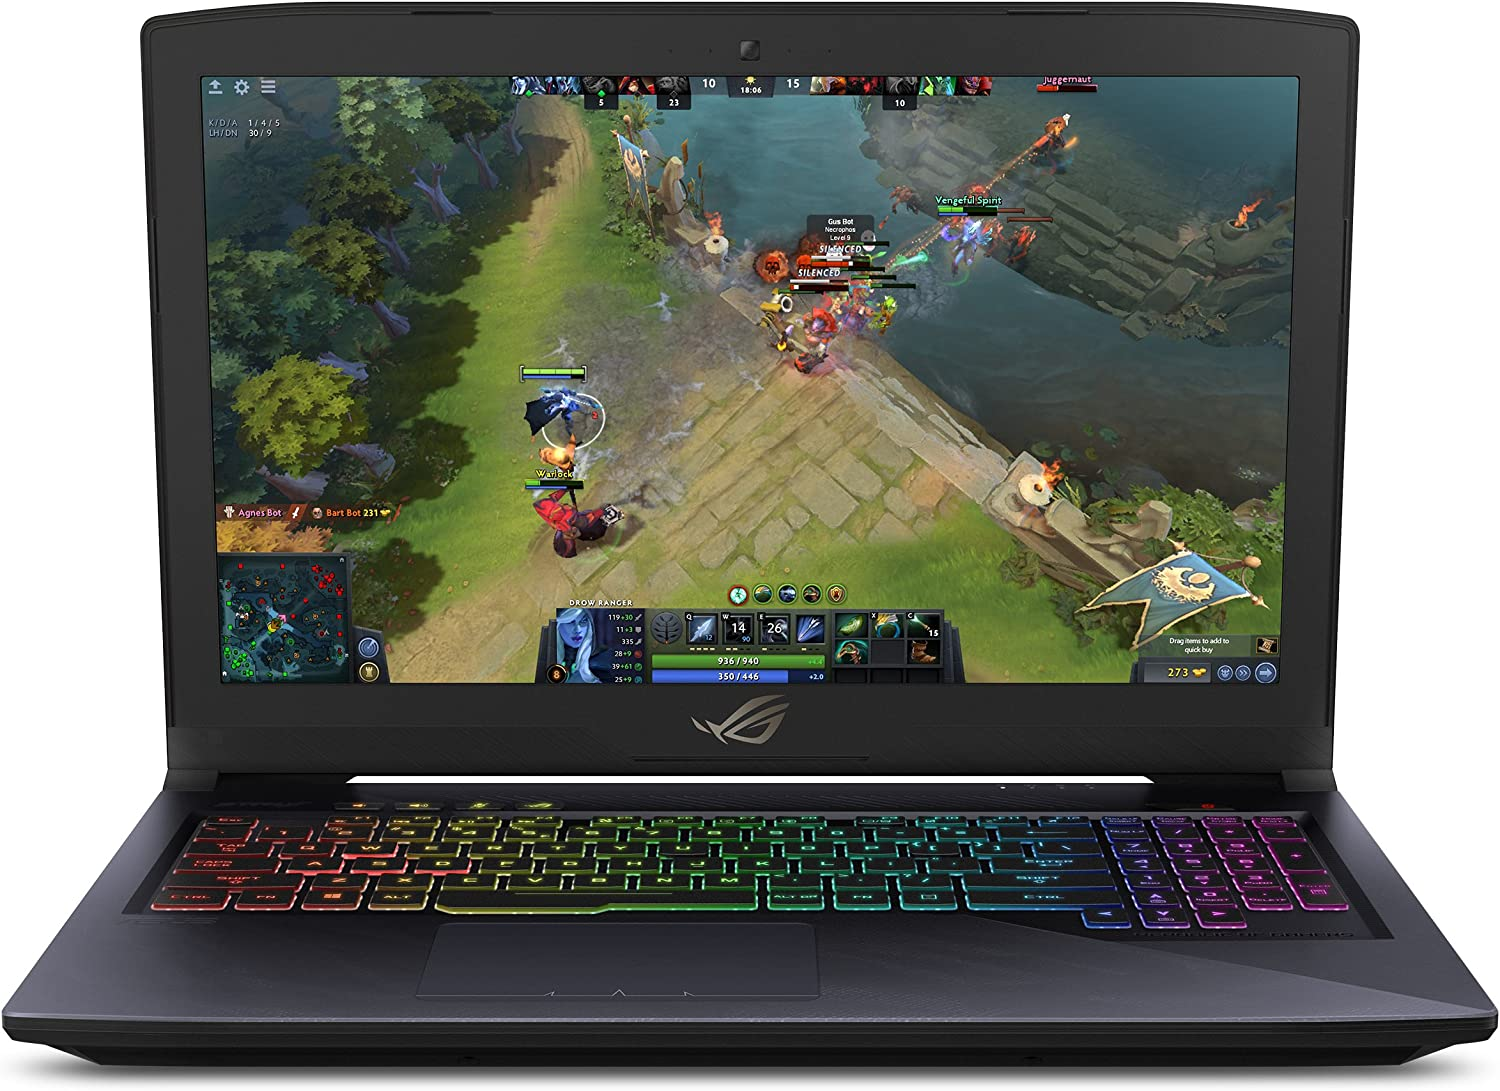 "Asus ROG Strix Hero Edition Gaming Laptop, 15.6"" IPS-Type Full HD, Intel Core i7-7700HQ Processor, GeForce GTX 1060 6GB, 16GB DDR4, 256GB M.2 SSD + 1TB Hybrid SSHD, RGB, Windows 10 Home – GL503VM-DB74"